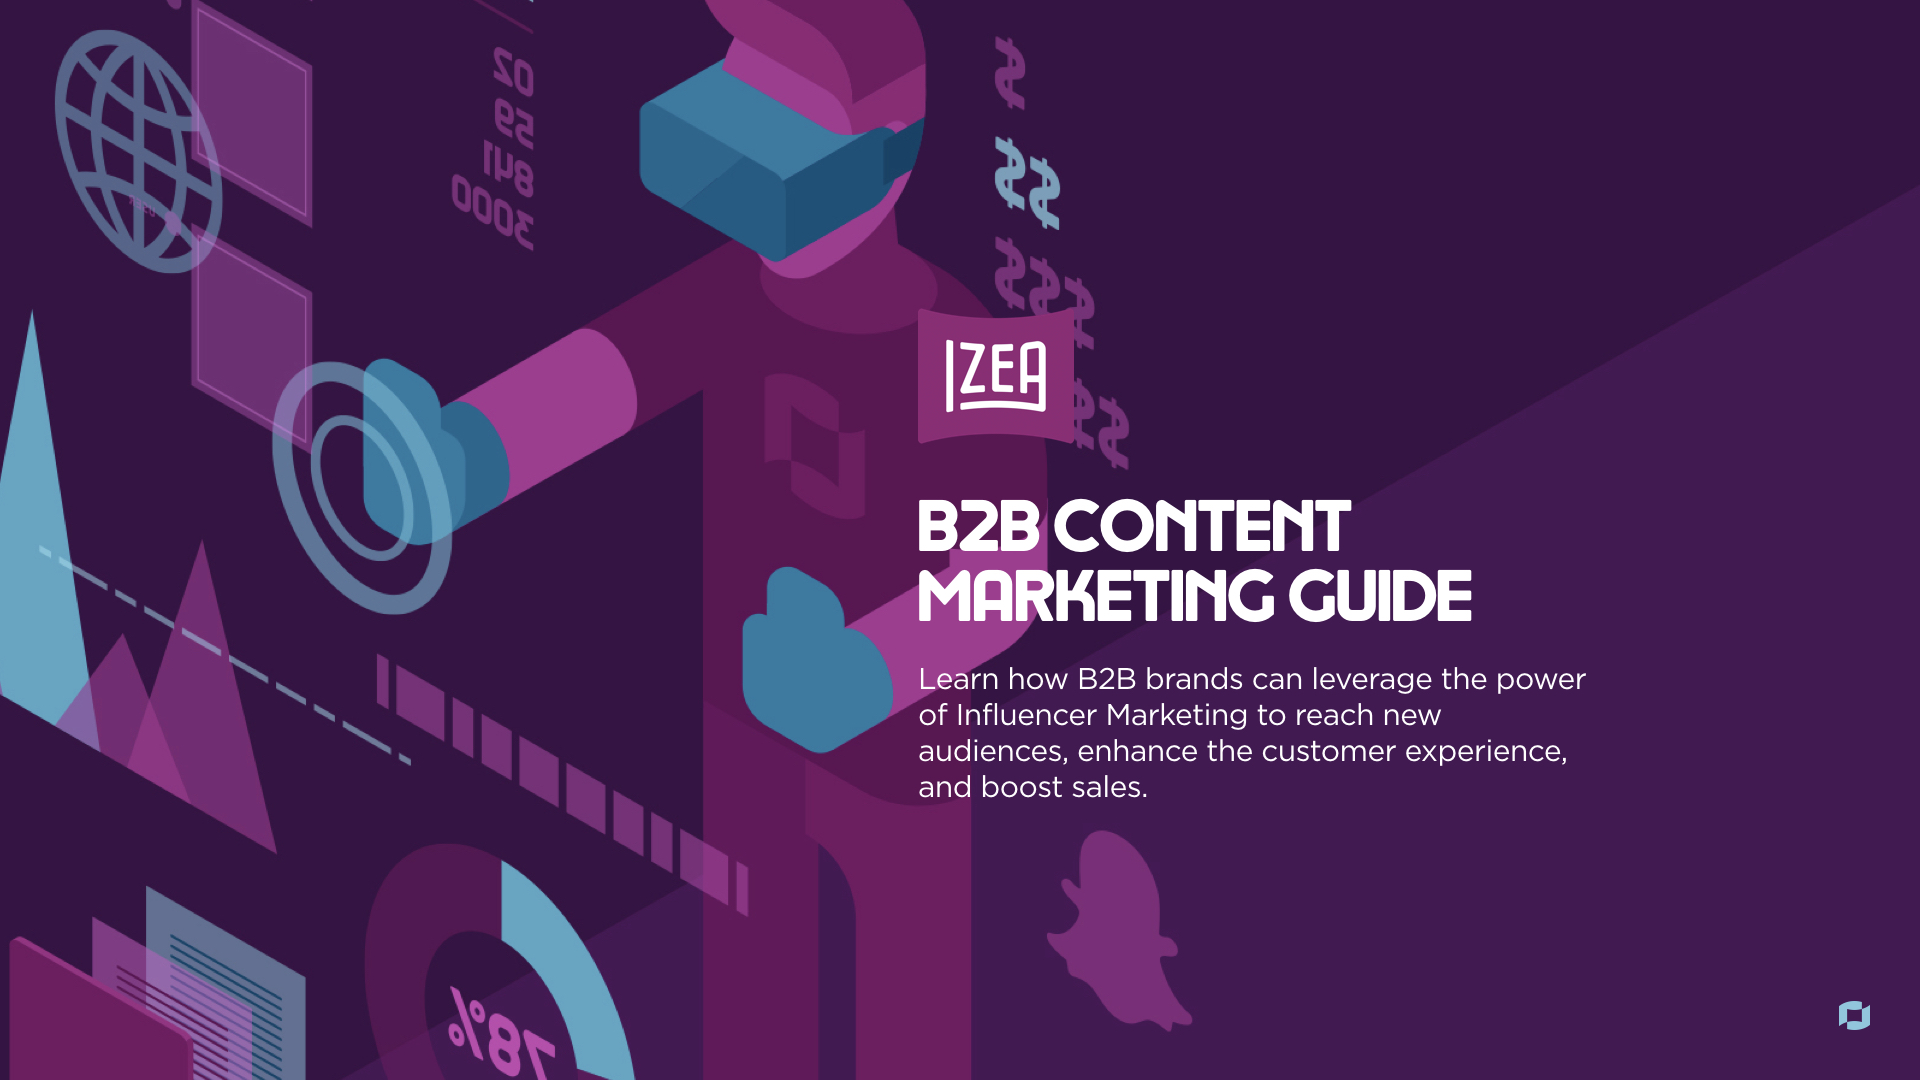 B2B Content Marketing Guide Cover